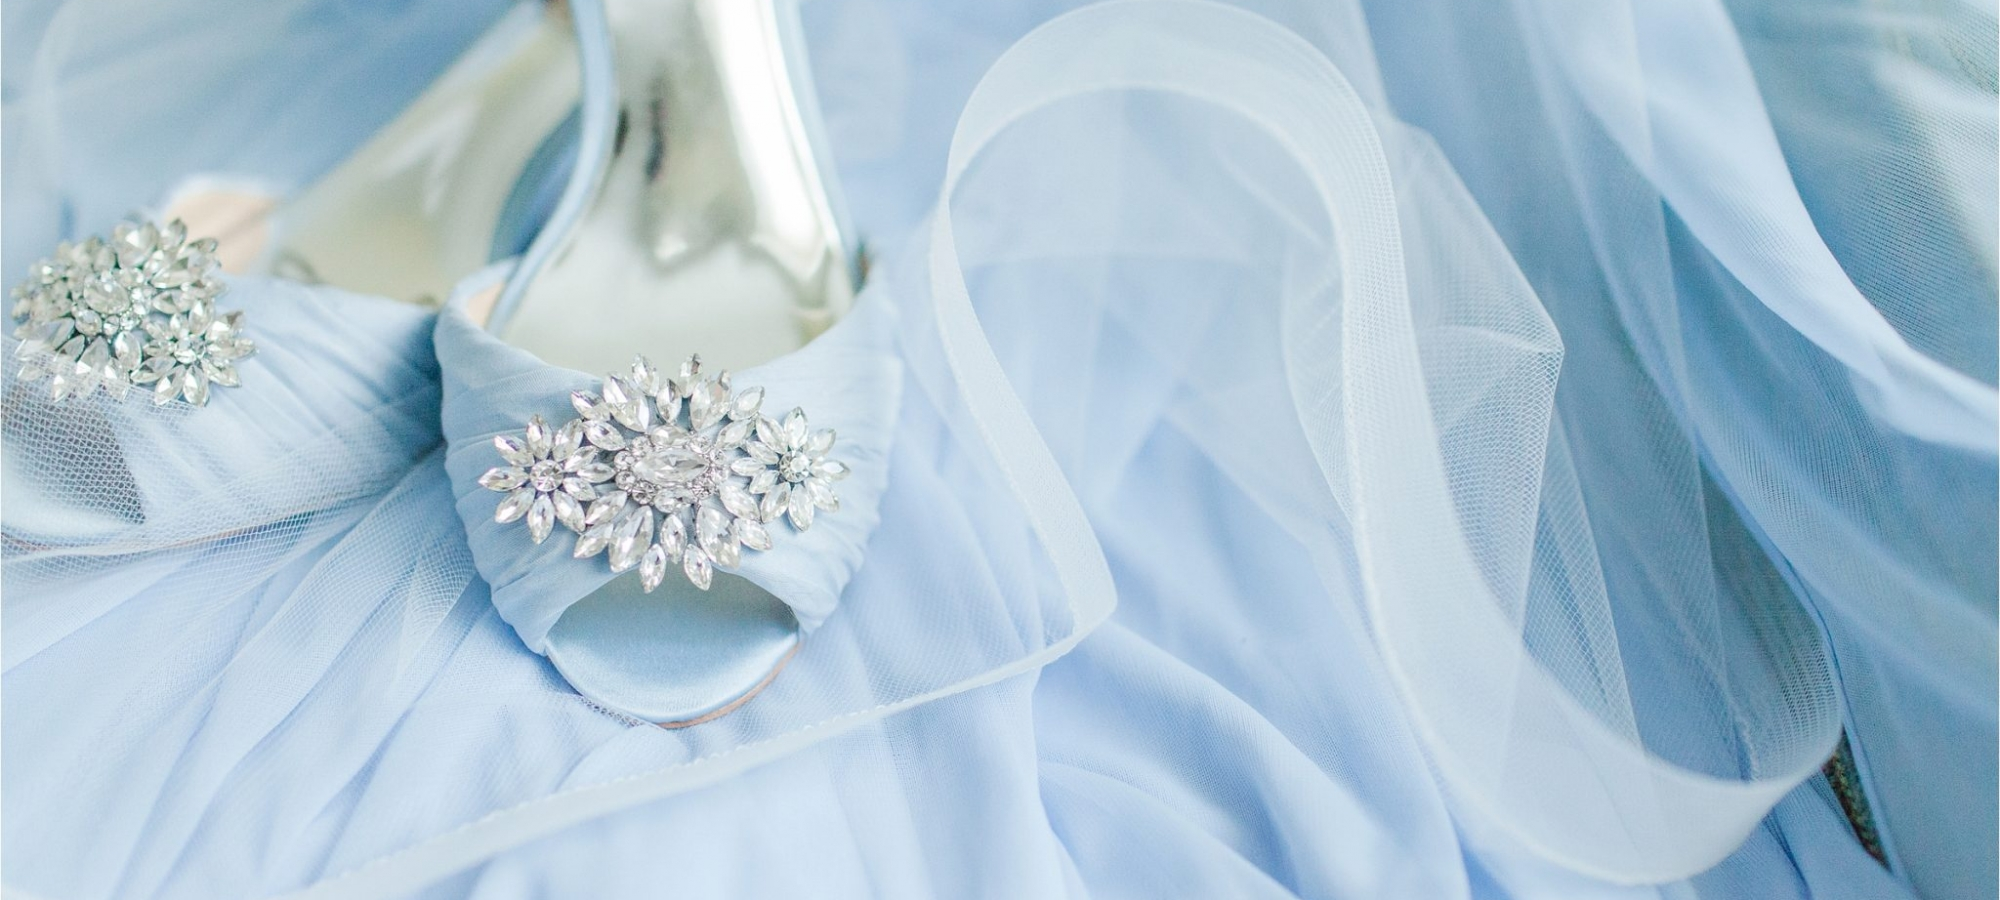 Classy-Light-Blue-wedding-at-the-Fairhope-Inn-MaryFrances-Craig_0002